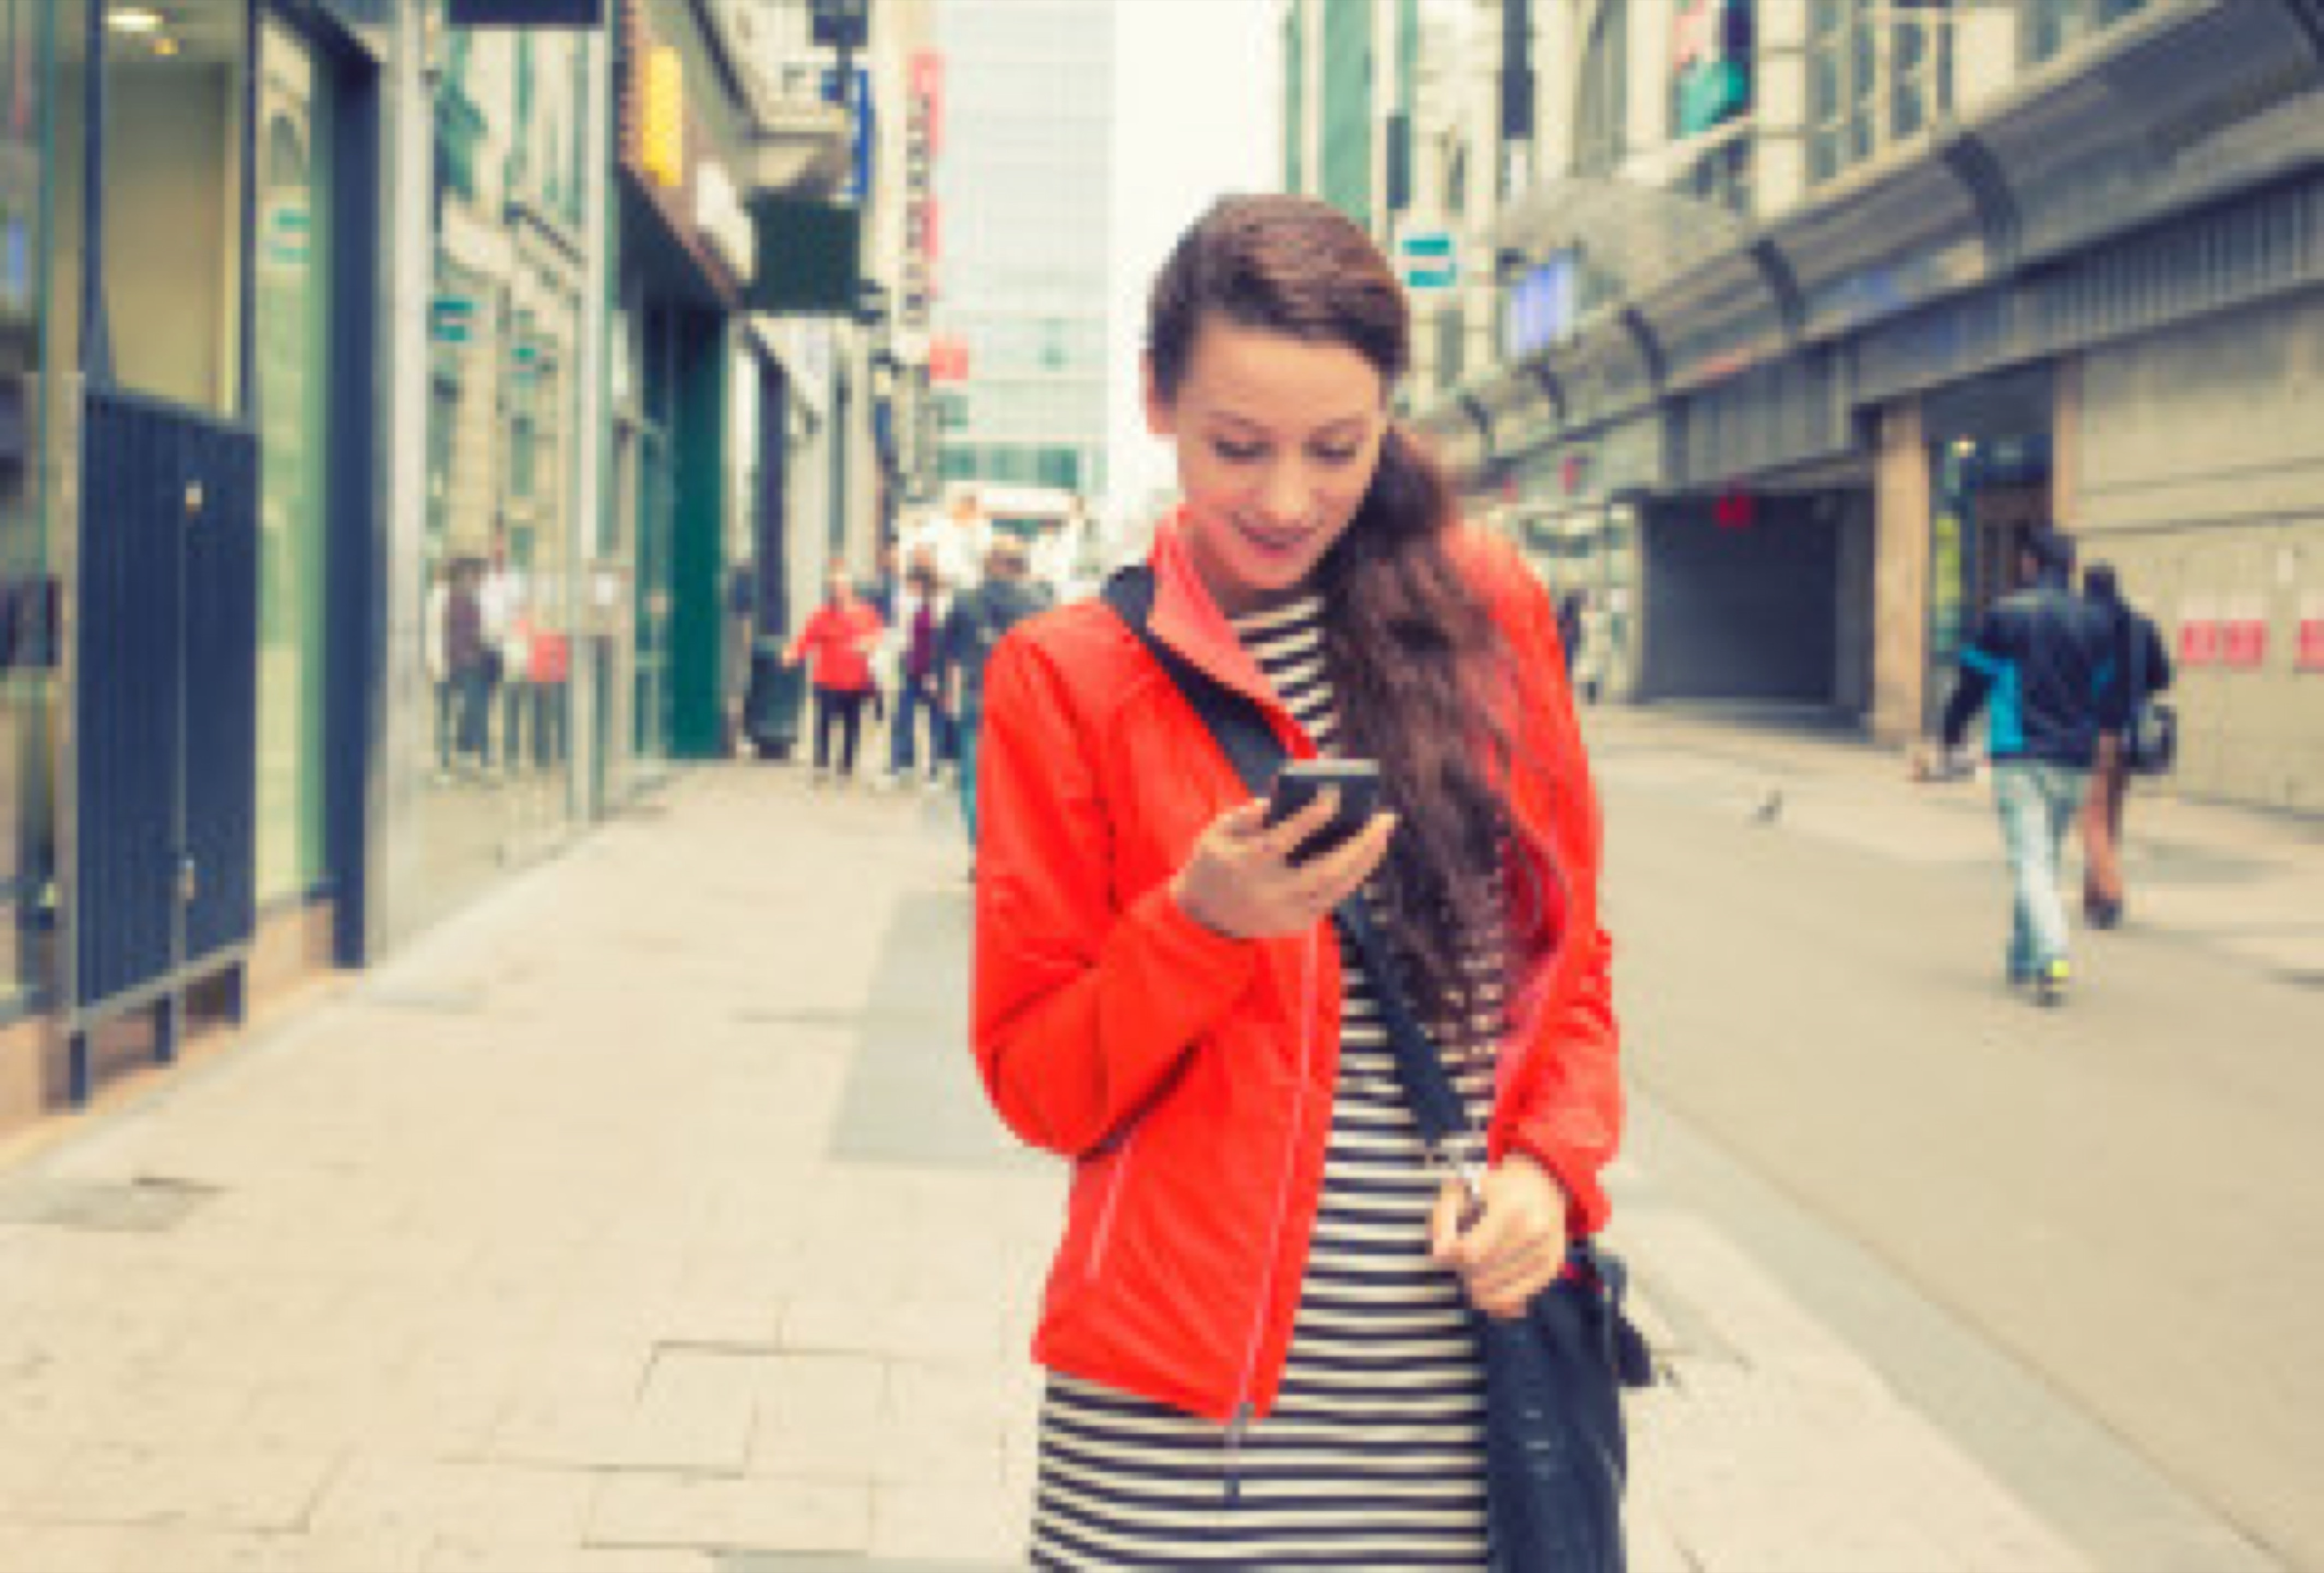 Happy girl texting on the smart phone walking down the street wearing a red jacket in autumn